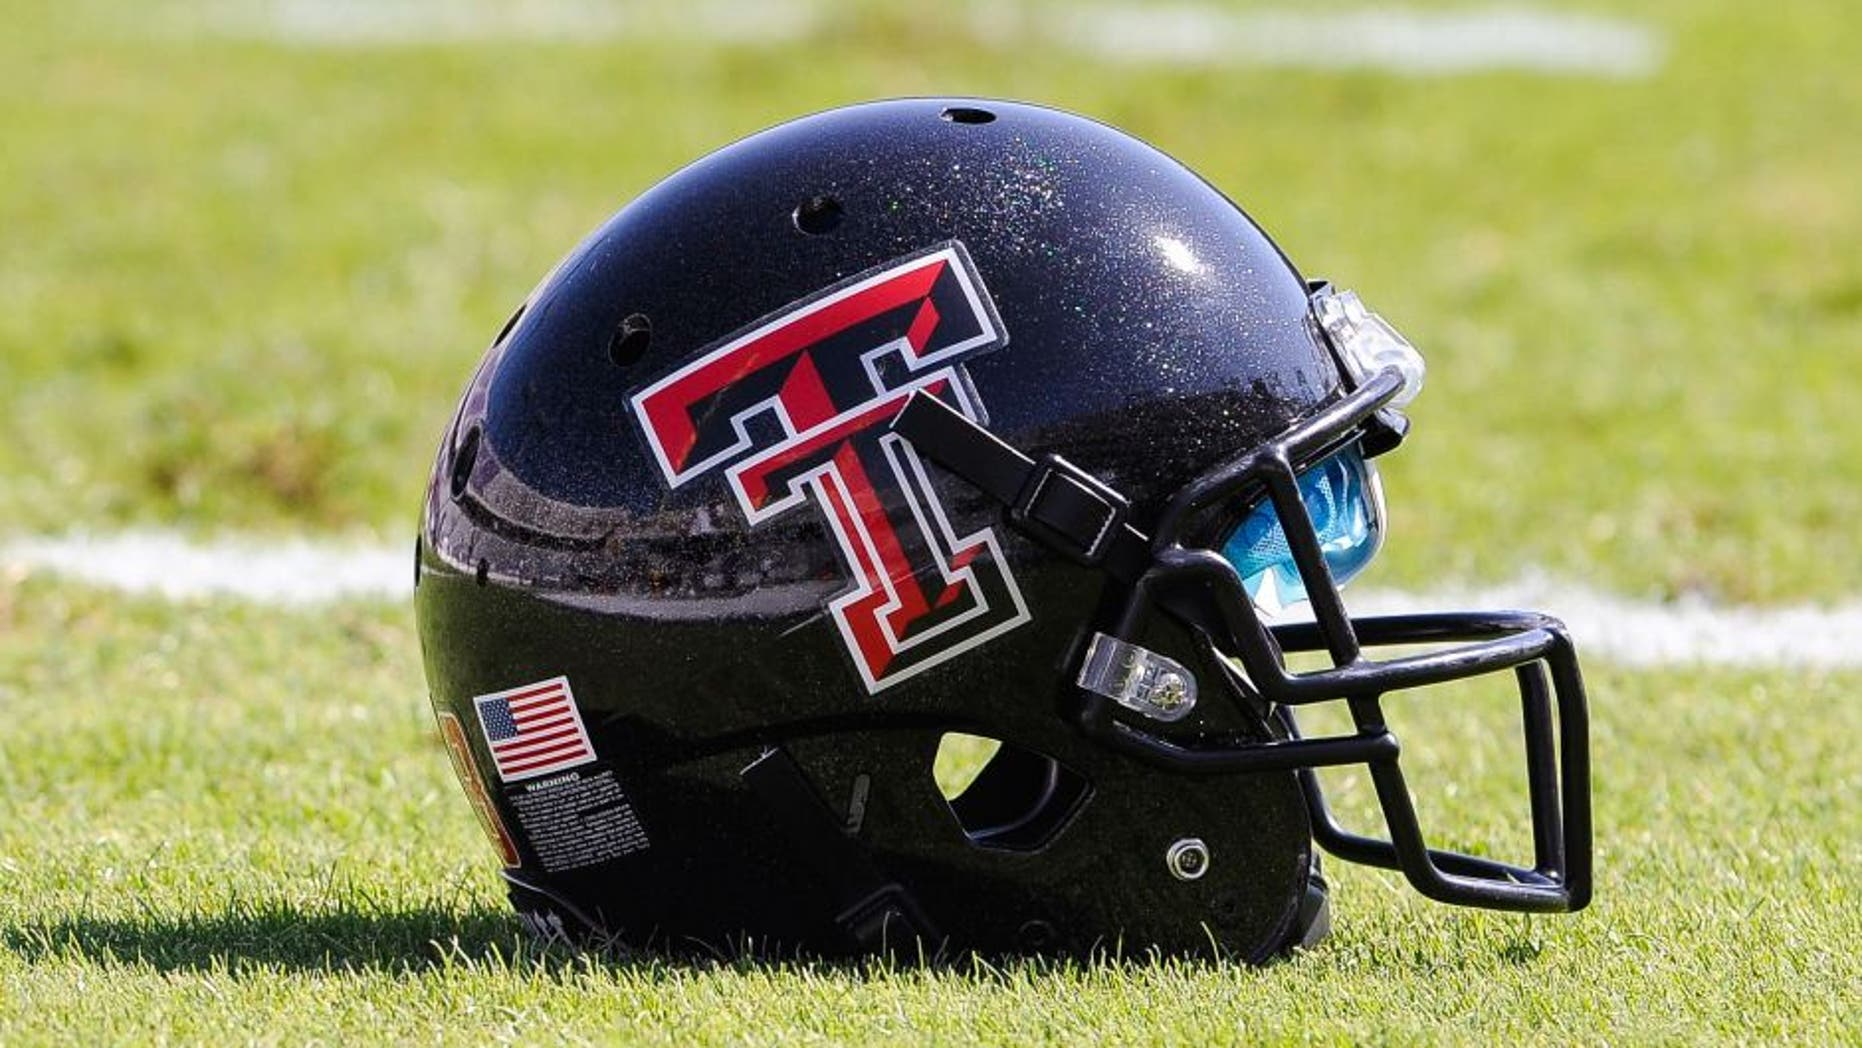 Oct 20, 2012; Fort Worth, TX, USA; A view of a Texas Tech Red Raiders helmet before the game between the Red Raiders and the TCU Horned Frogs at Amon G. Carter Stadium. The Red Raiders defeated the Horned Frogs 56-53 in overtime. Mandatory Credit: Jerome Miron-USA TODAY Sports